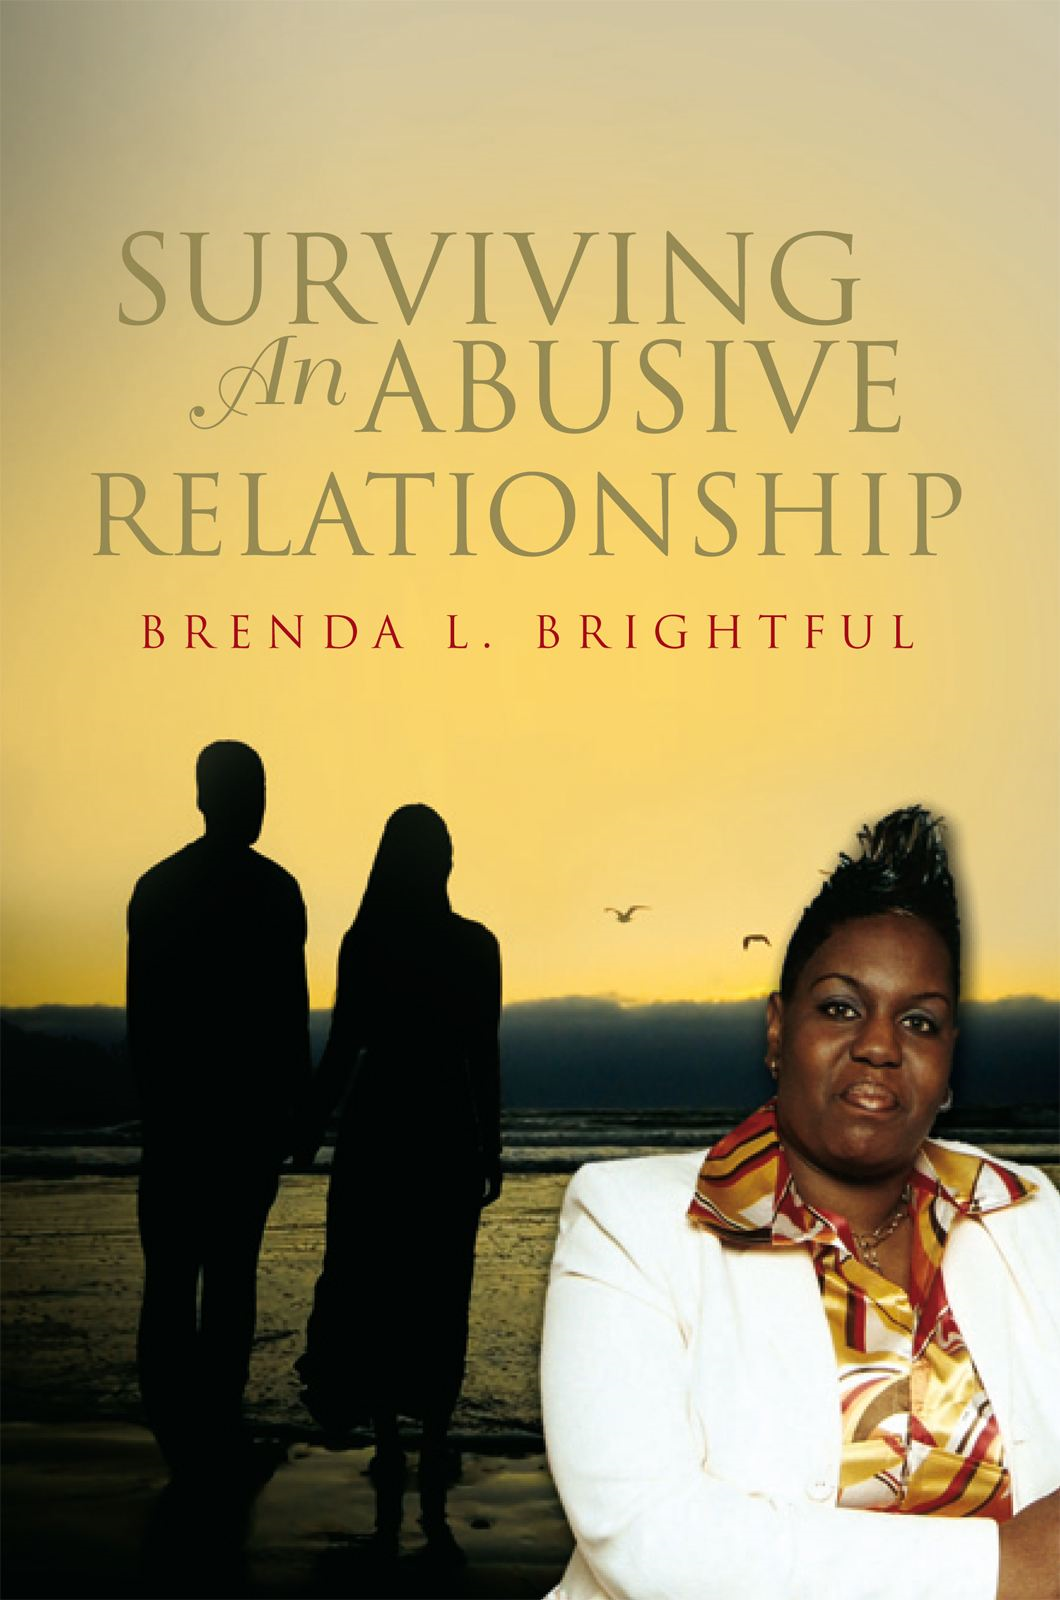 Surviving An Abusive Relationship